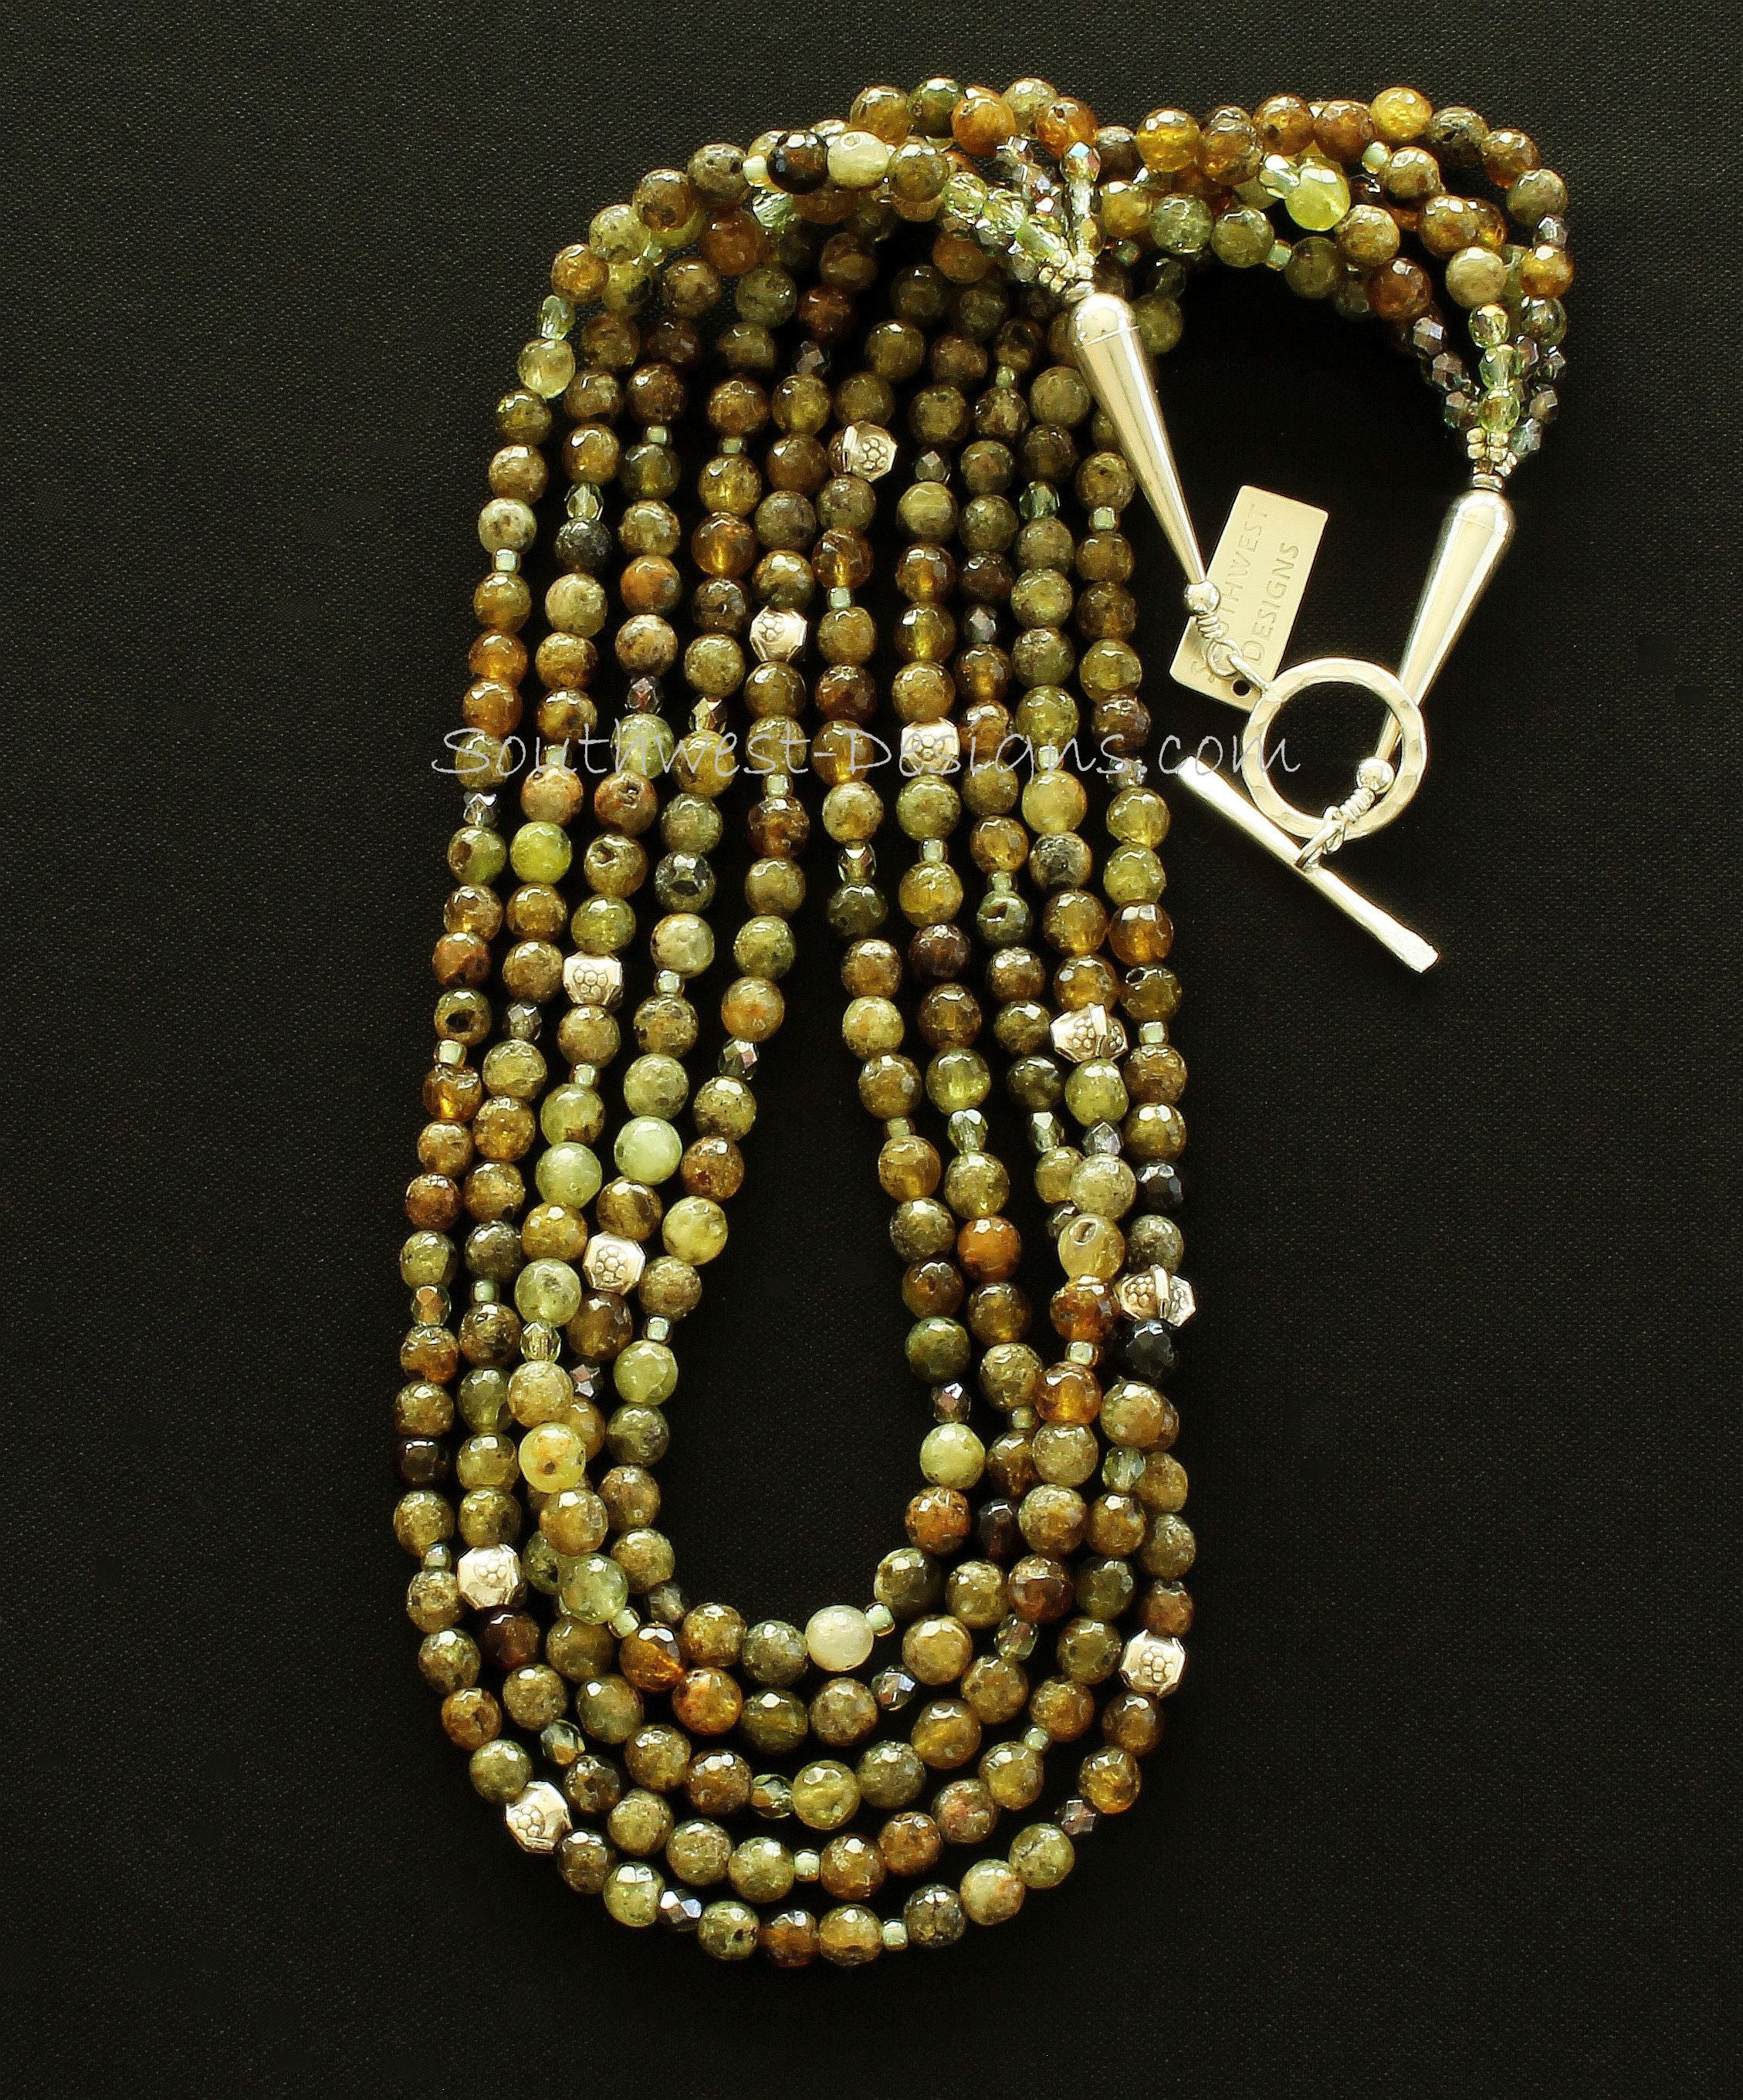 Green Garnet Faceted Rounds 5-Strand Necklace with Czech Glass and Sterling Silver